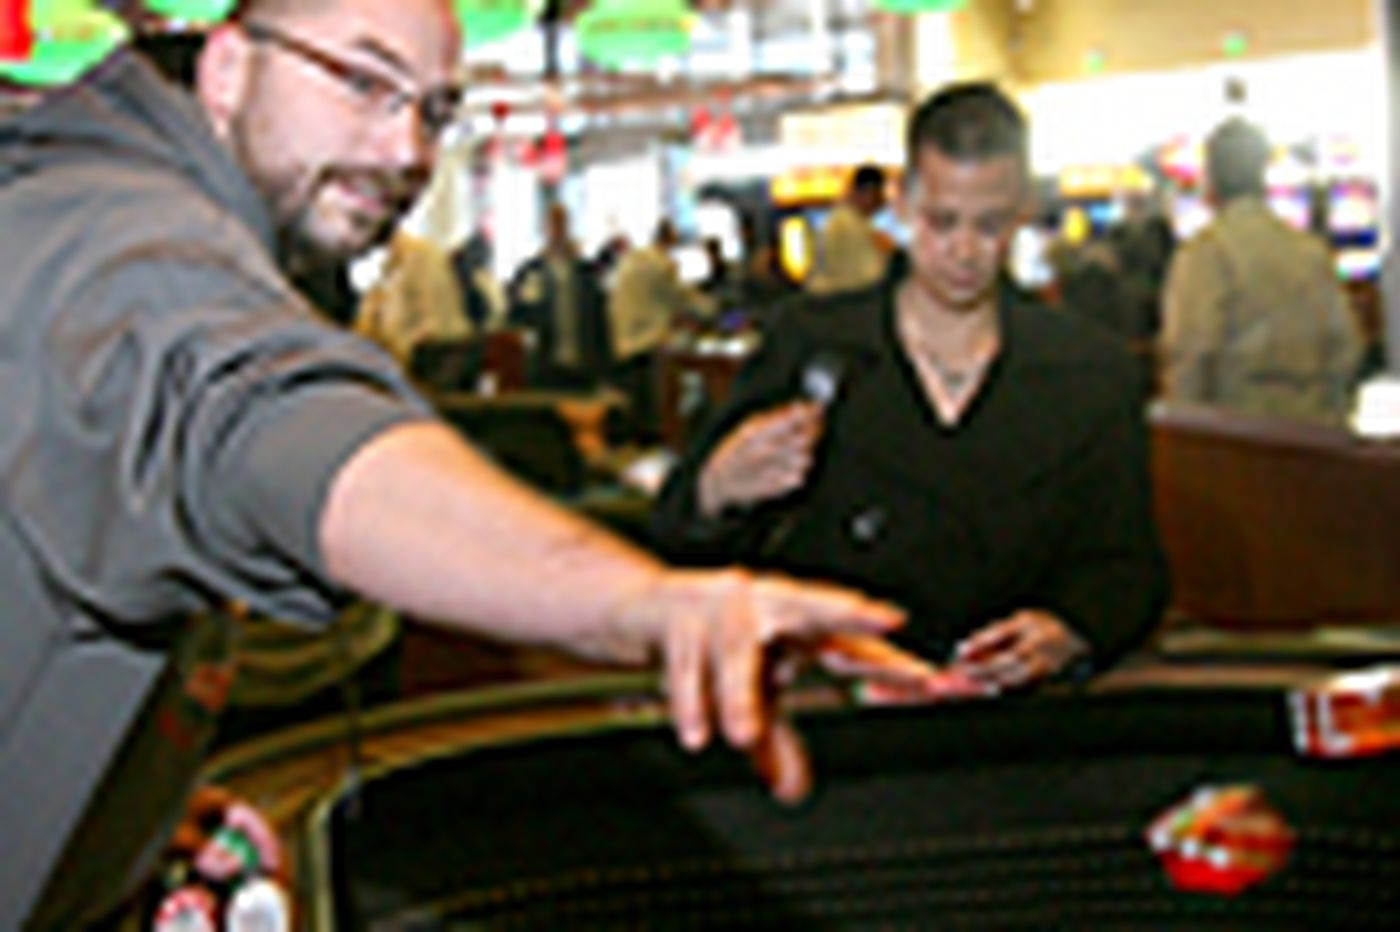 Foxwoods' loss is local rival casinos' gain